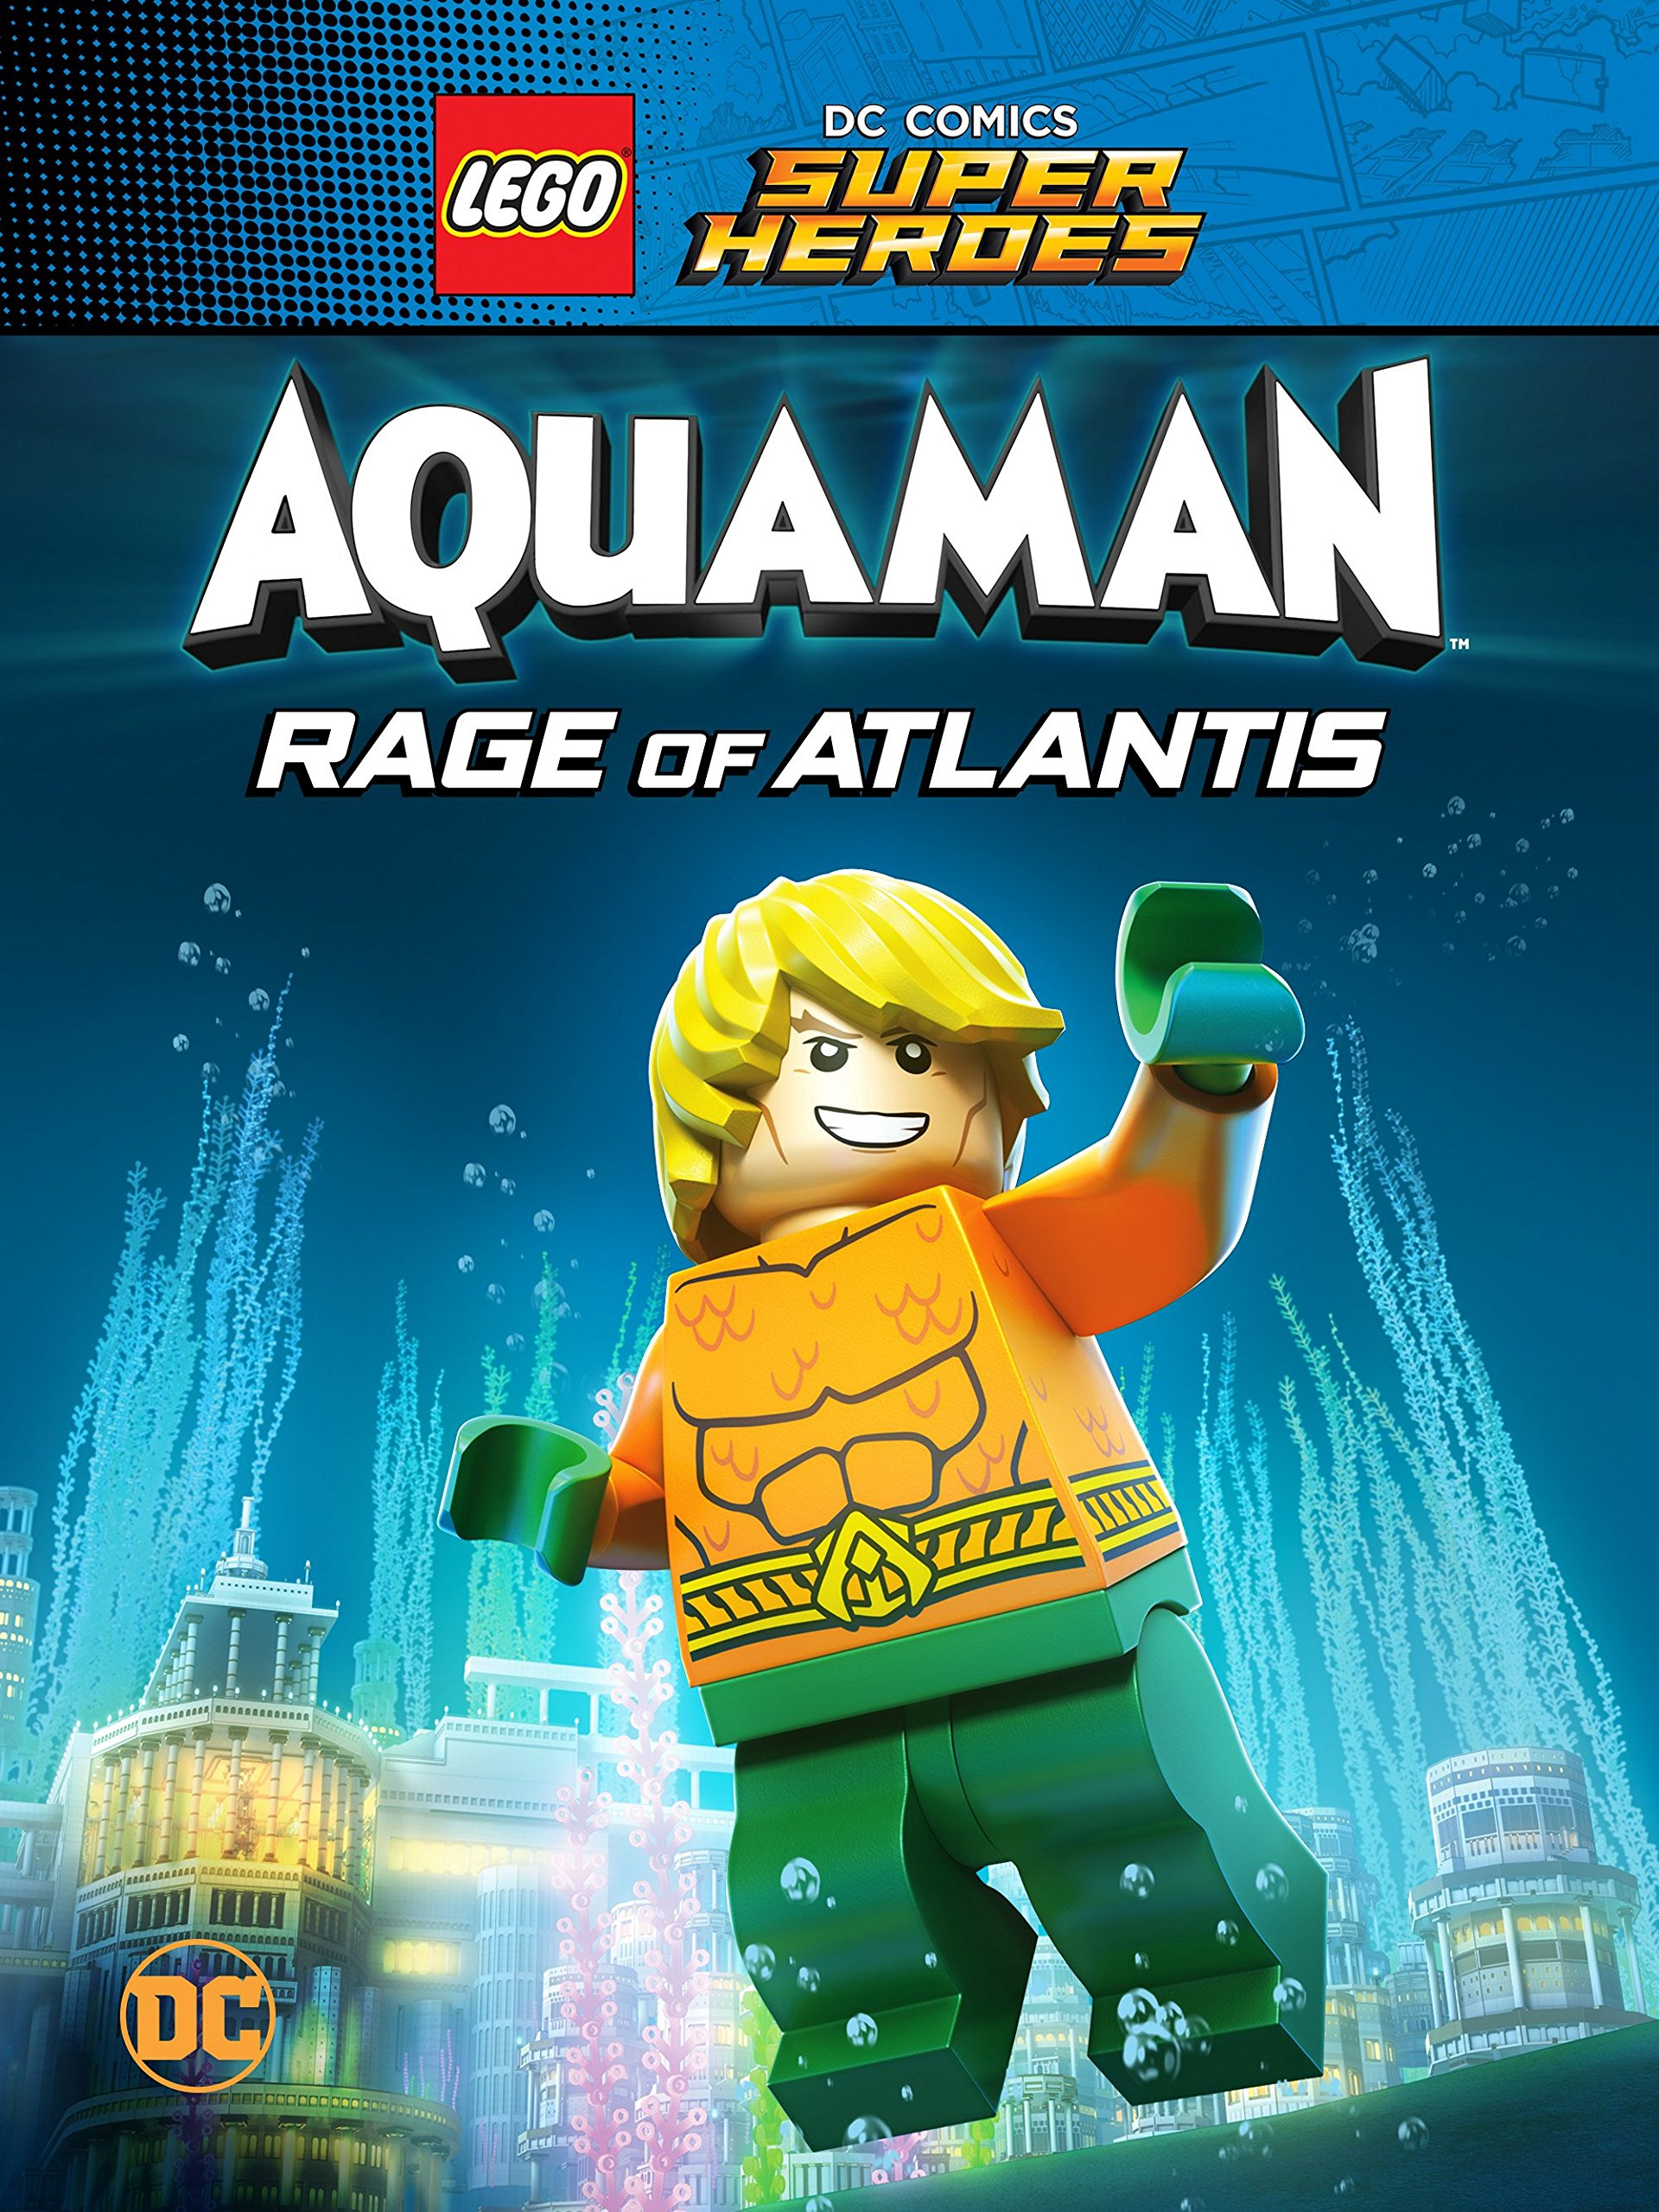 Amazon.com: Watch LEGO DC Comics Super Heroes: Aquaman: Rage ...